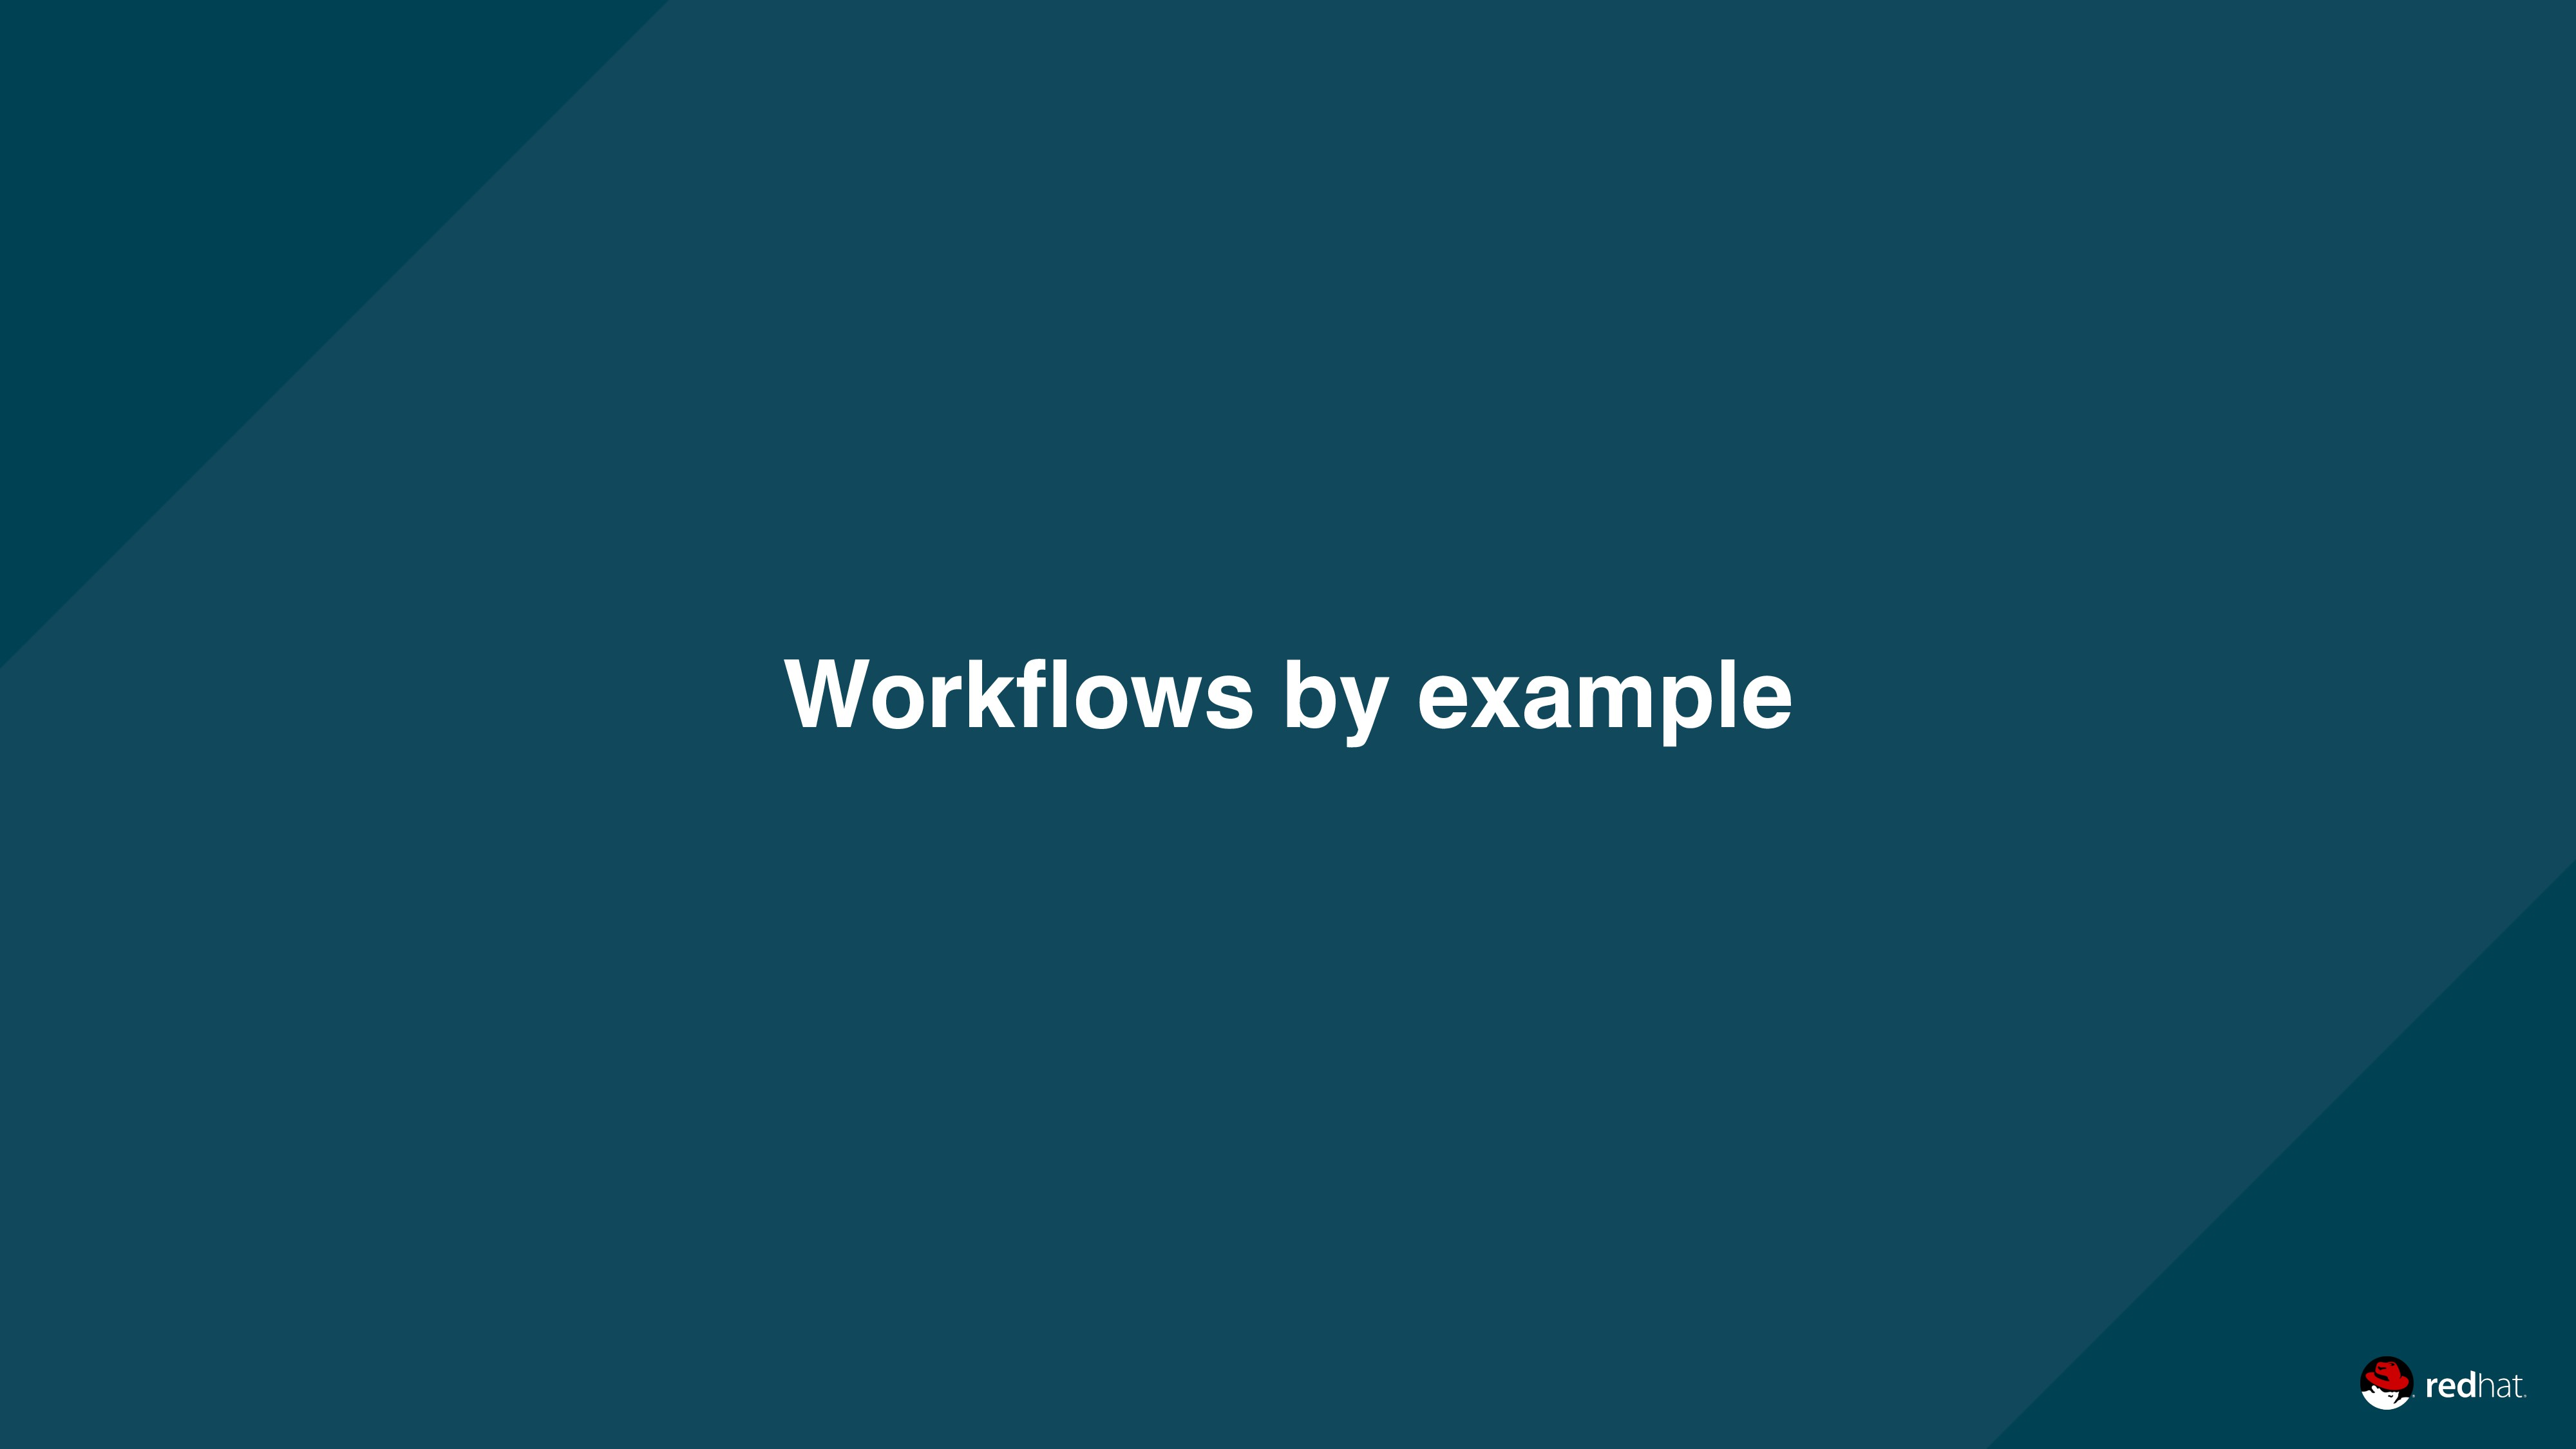 Workflows by example